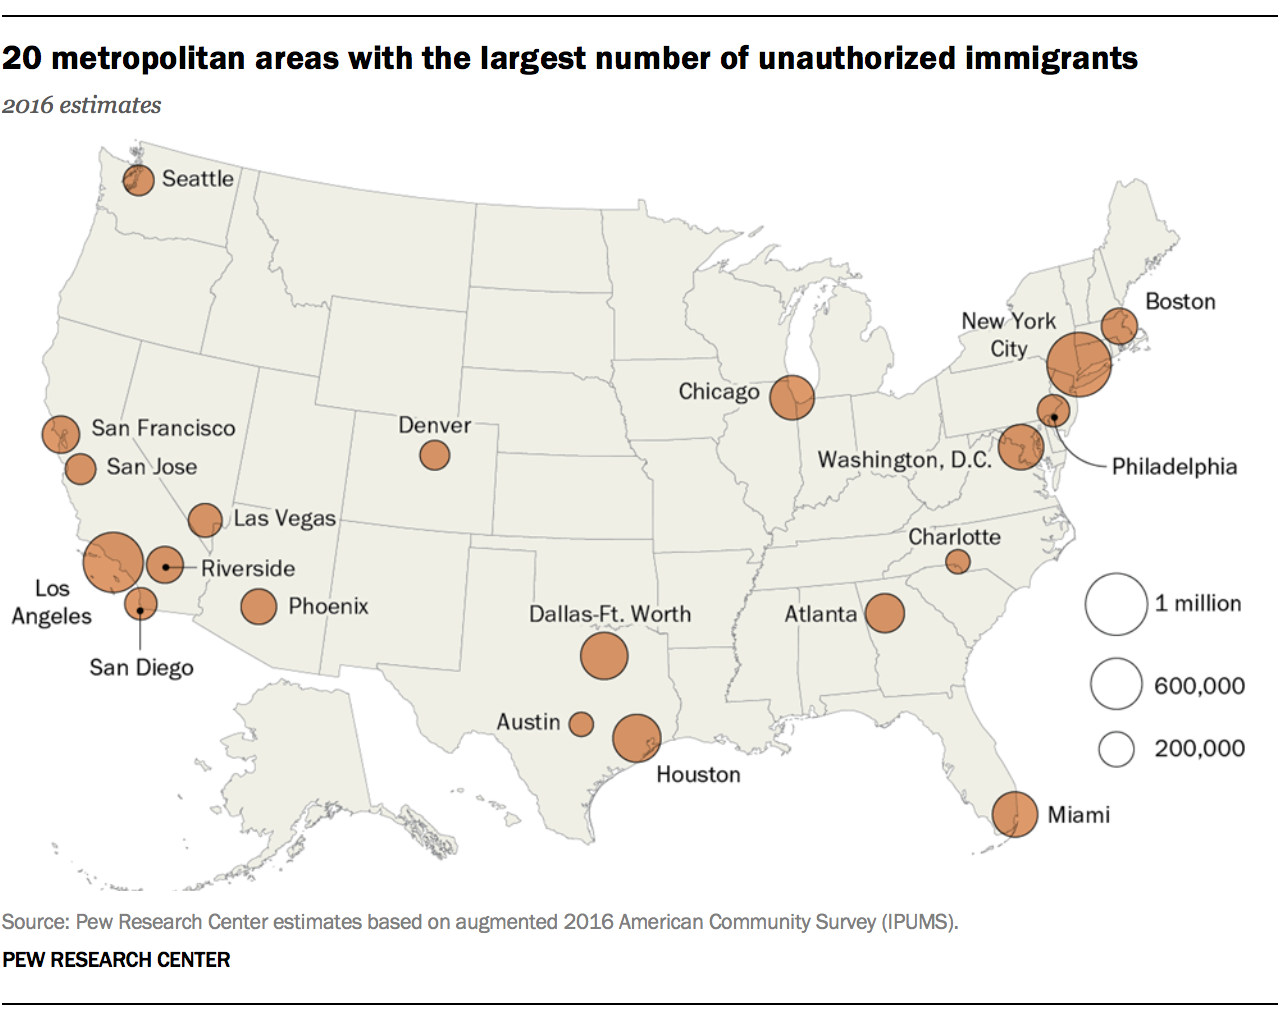 20 metropolitan areas with the largest number of unauthorized immigrants